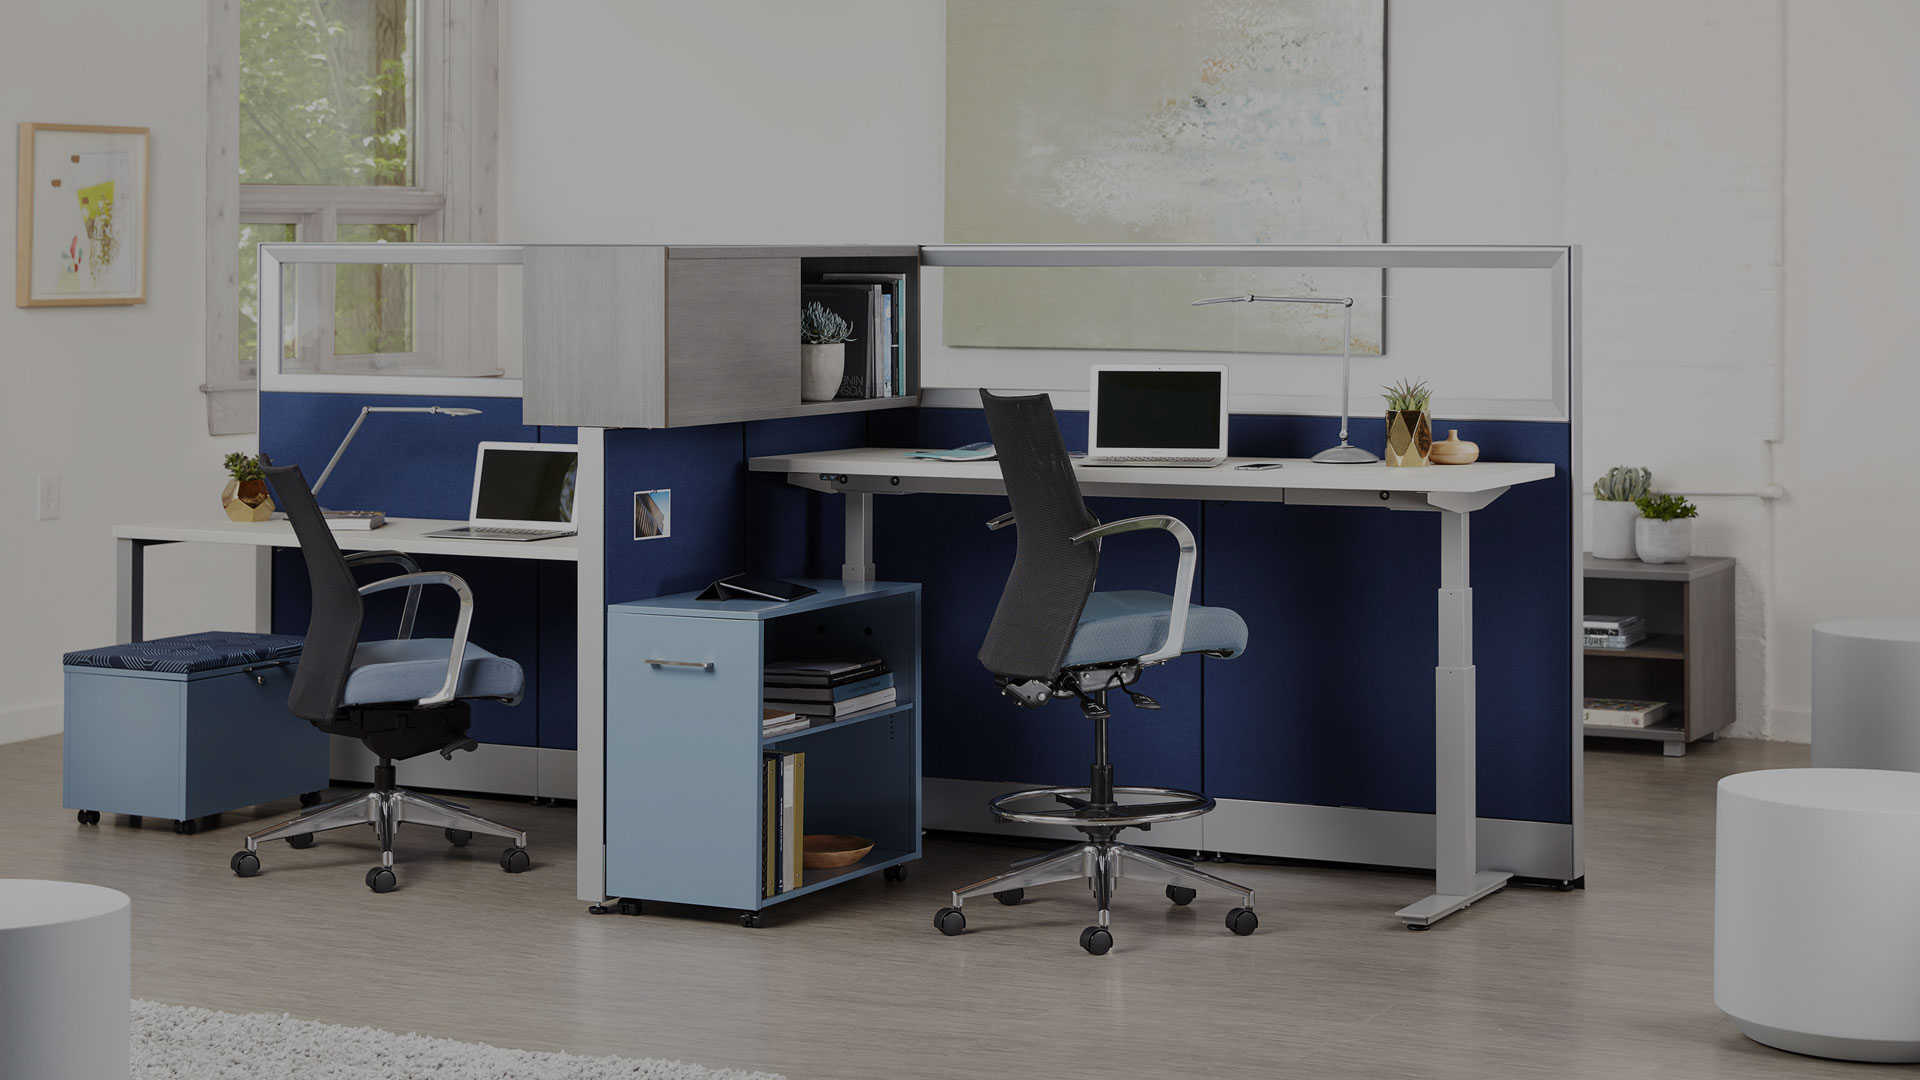 Trendway Capture System with Height Adjustable Desks